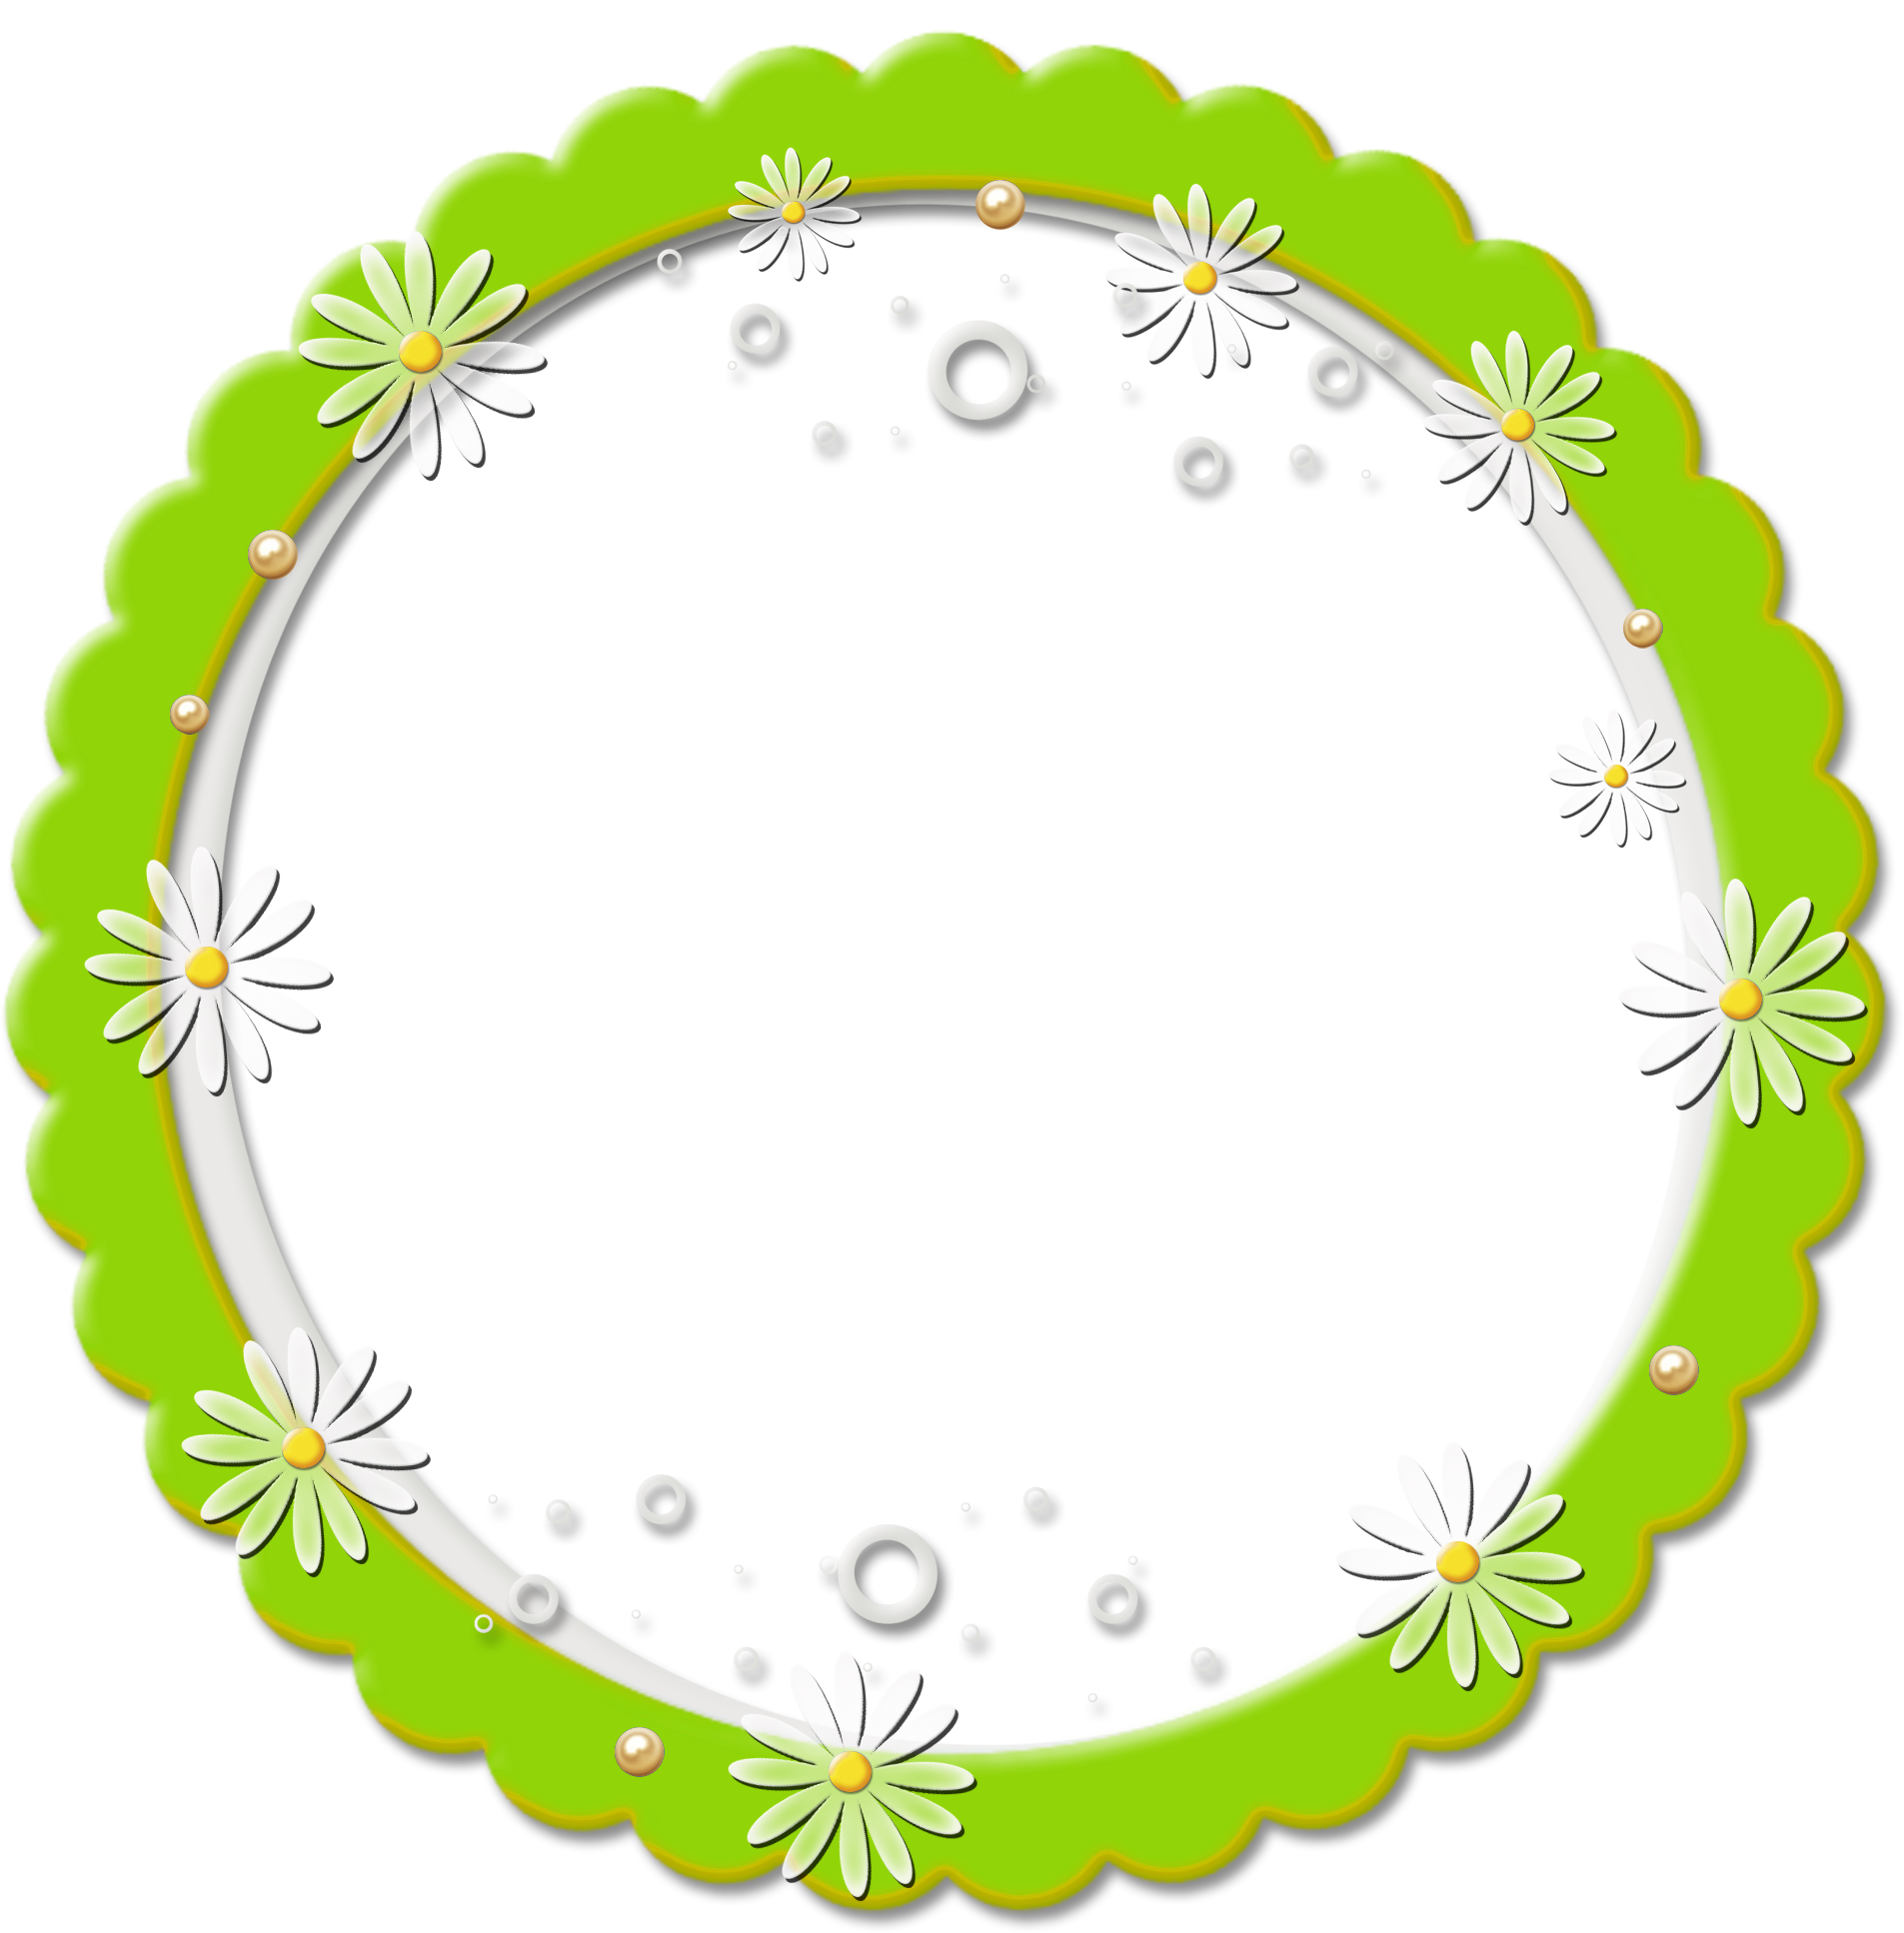 Cute round daisy gallery. Circle frame png